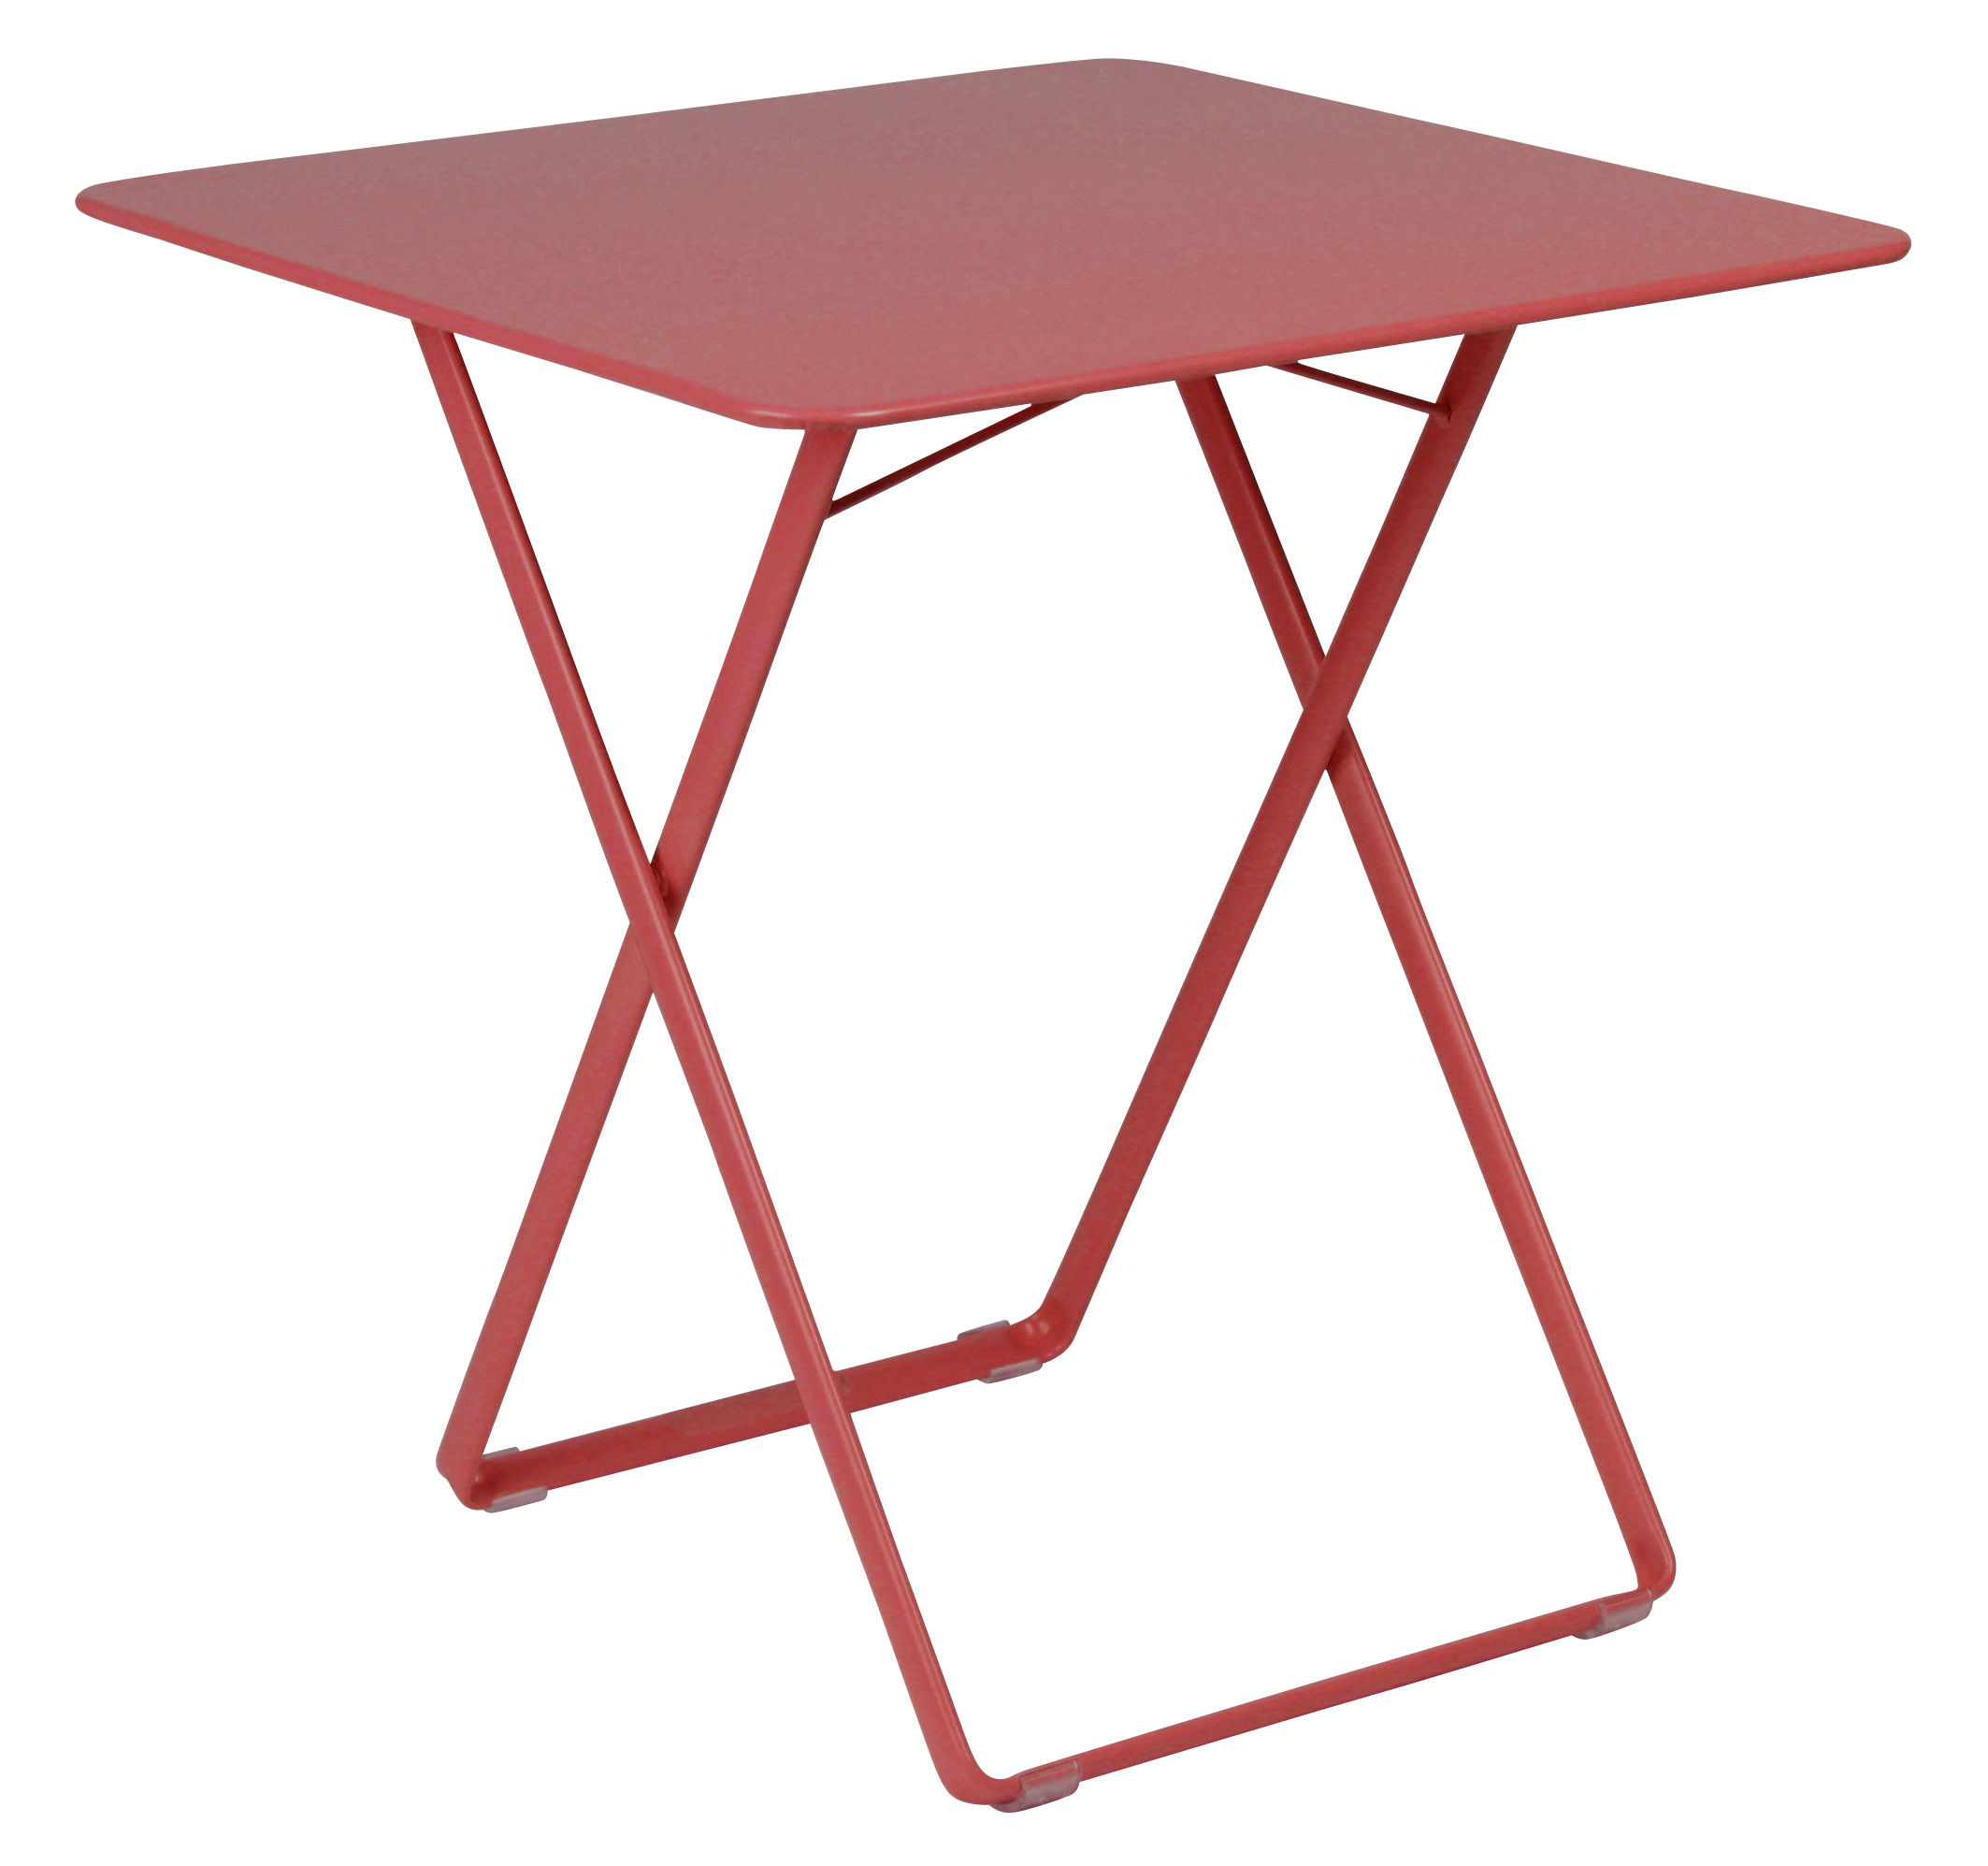 Plein Air Foldable Table 71 X 71cm Poppy By Fermob